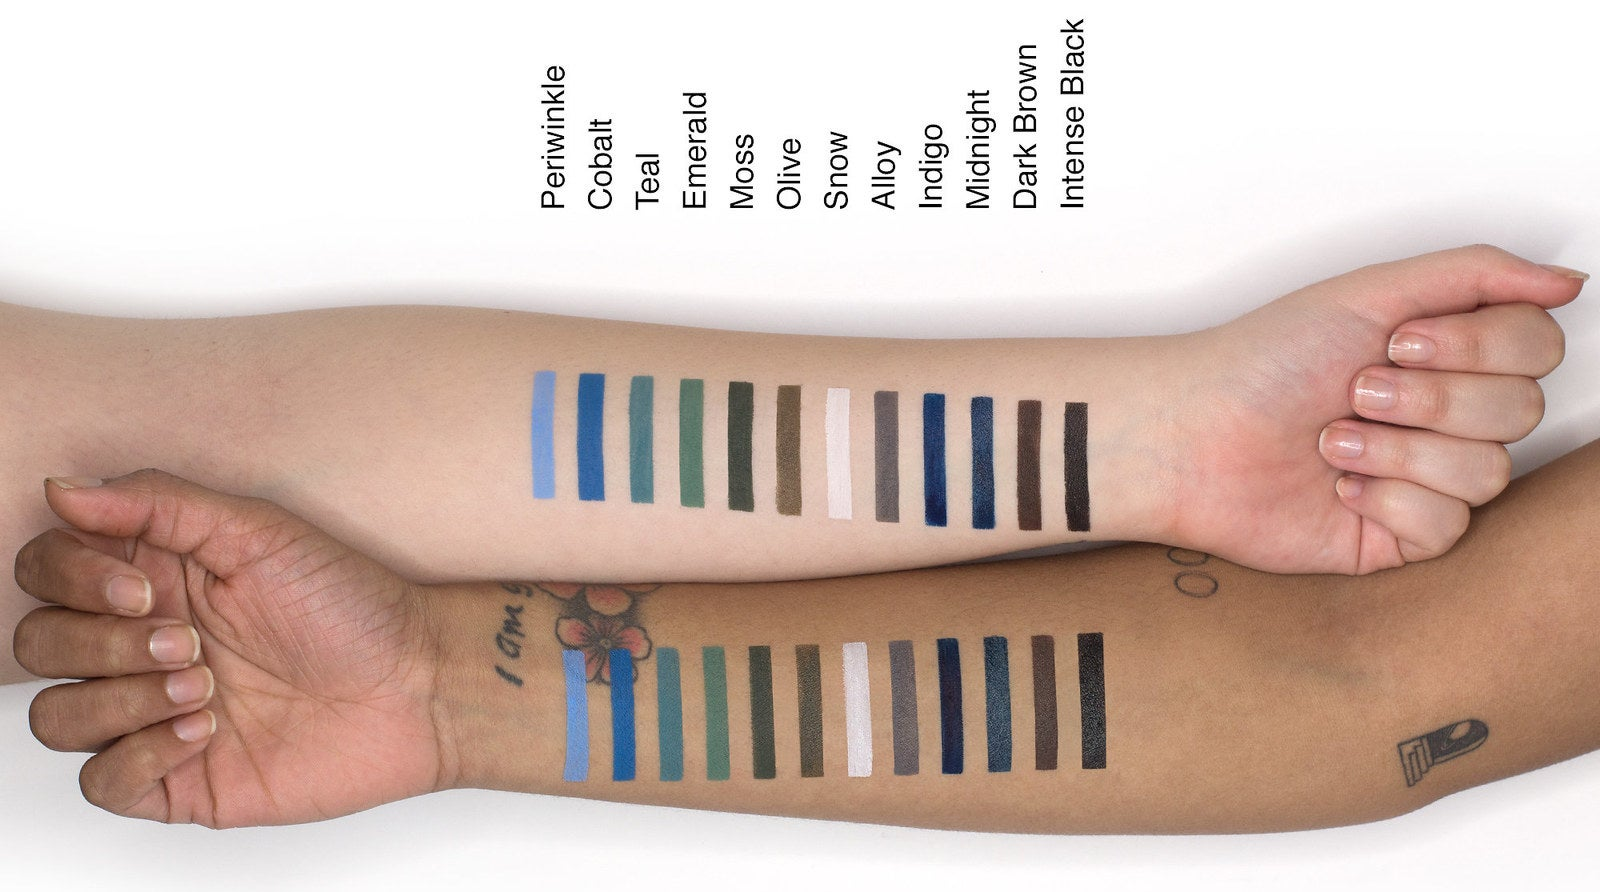 Two arms showing swatches of 12 shades, including blues, greens, browns and black